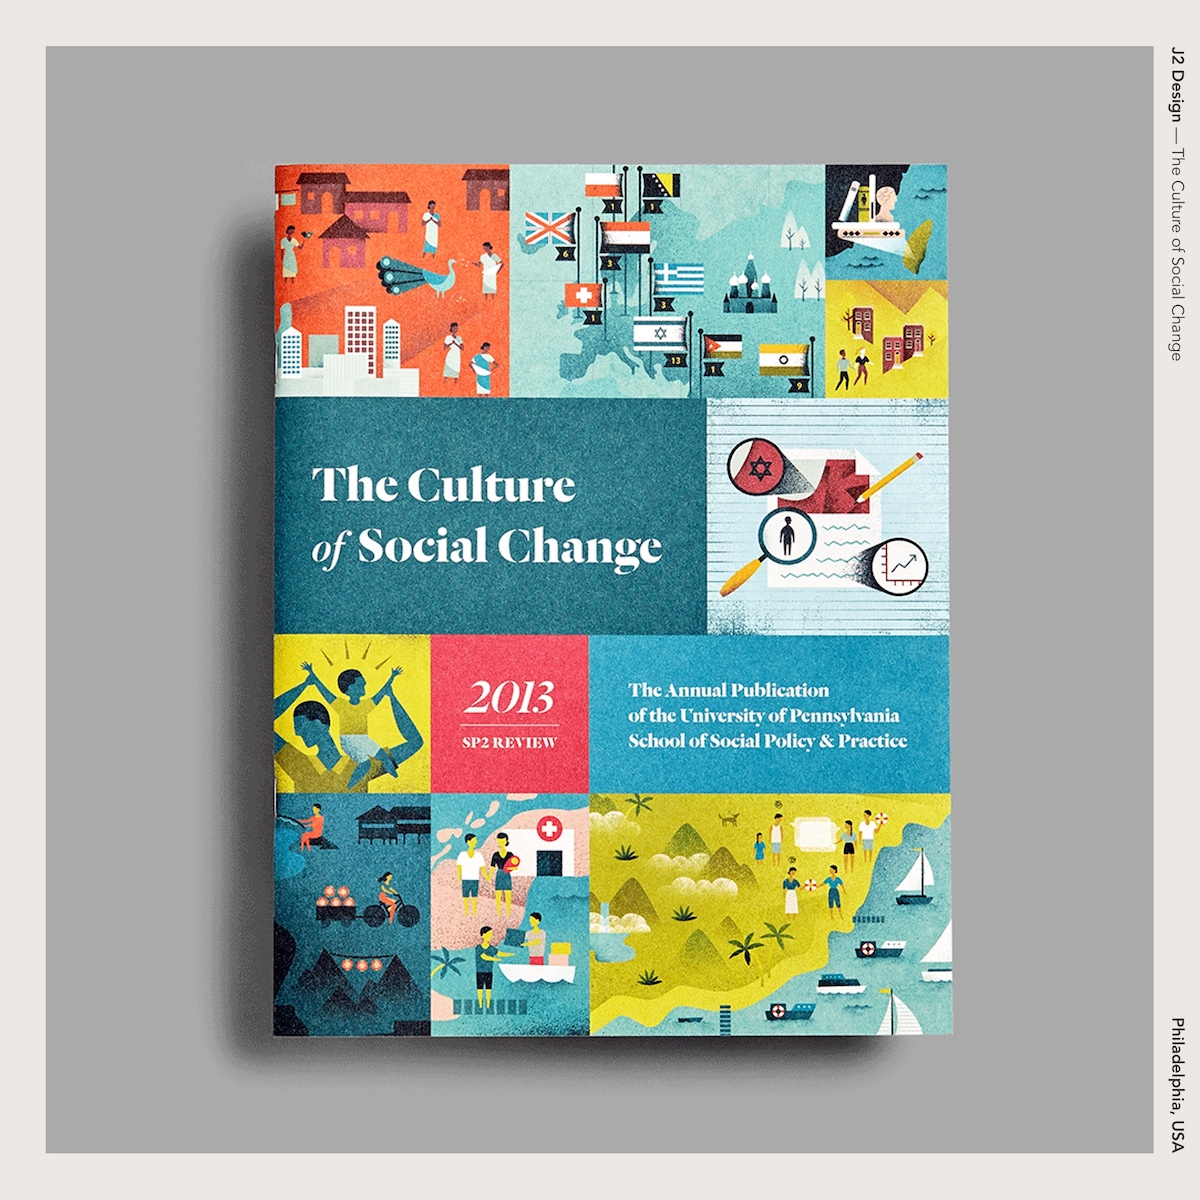 J2 Design — The Culture of Social Change